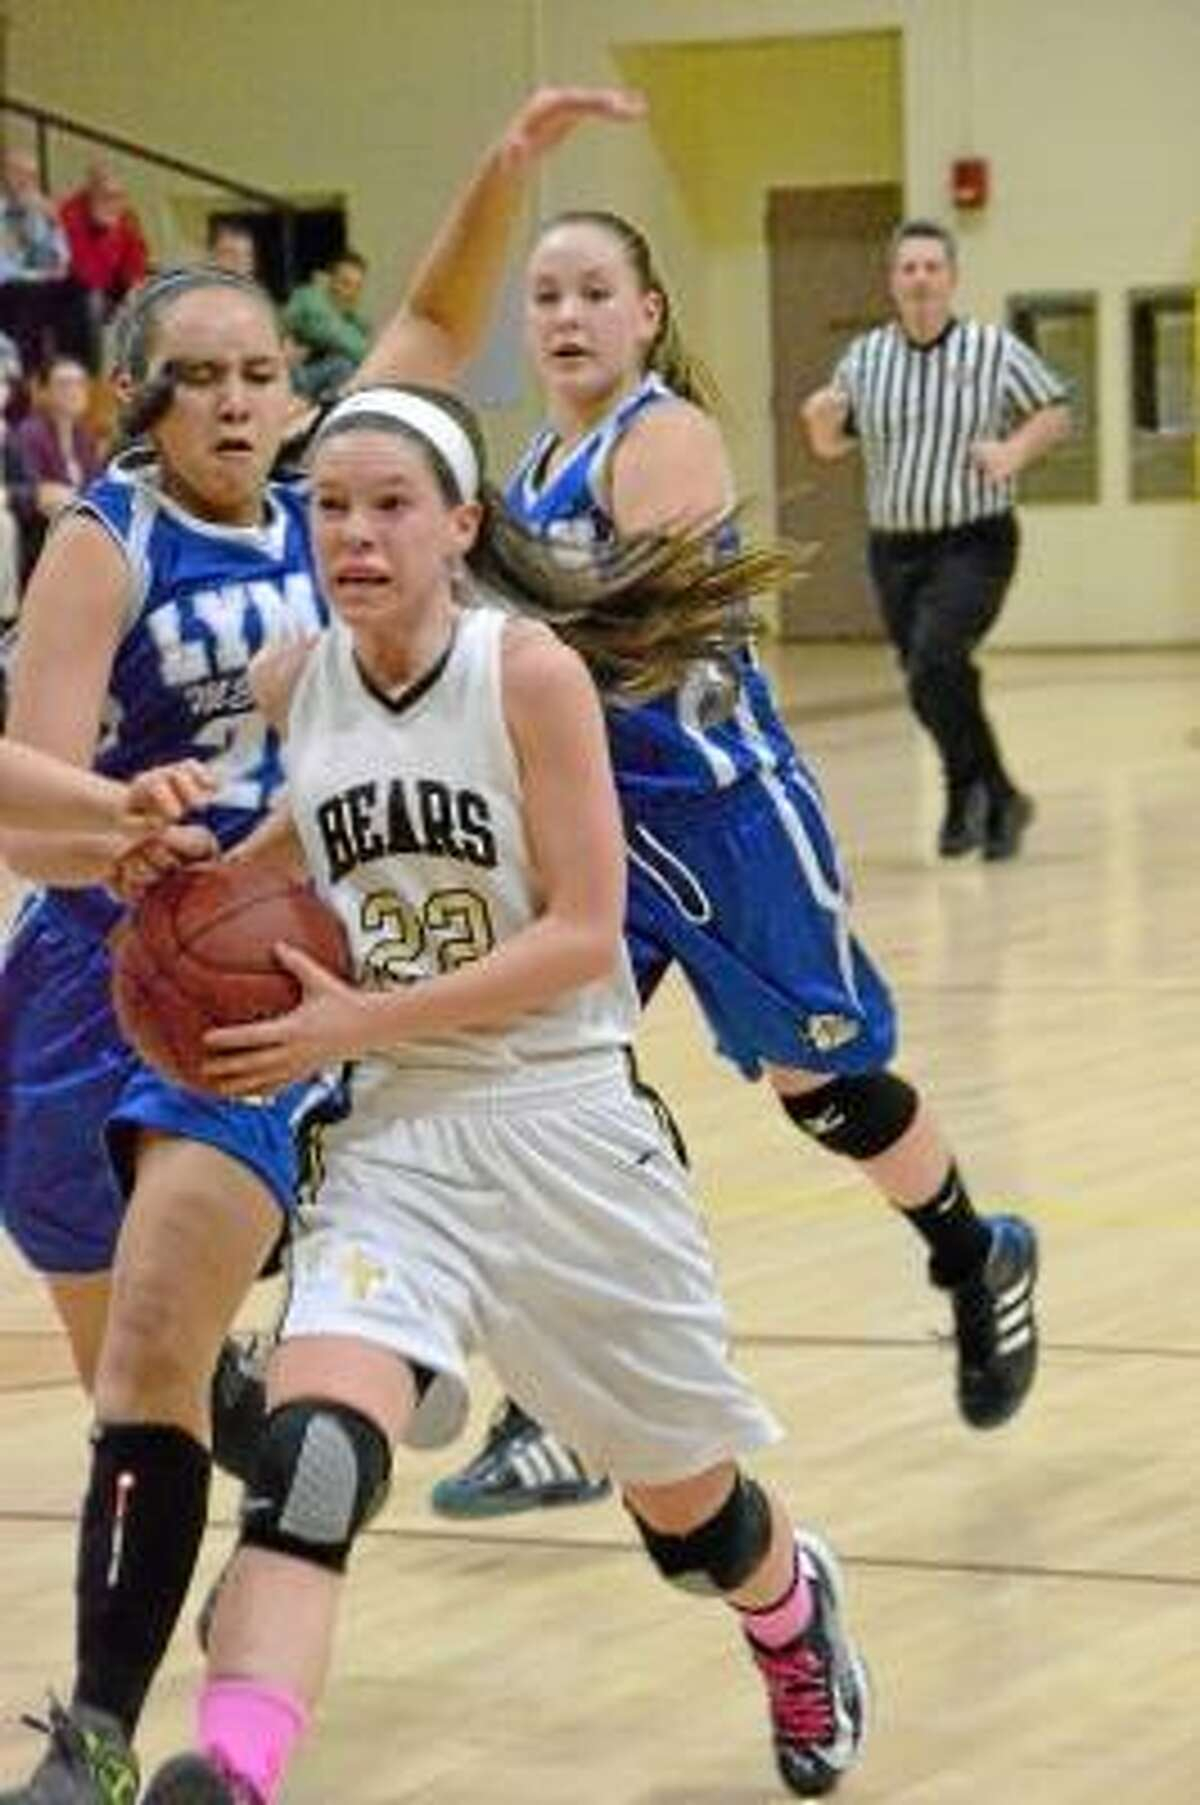 Thomaston's Maggie Eberhardt drives to the basket in the Golden Bears' 64-41 victory against Lyman Memorial. Photo by Pete Paguaga/Register Citizen